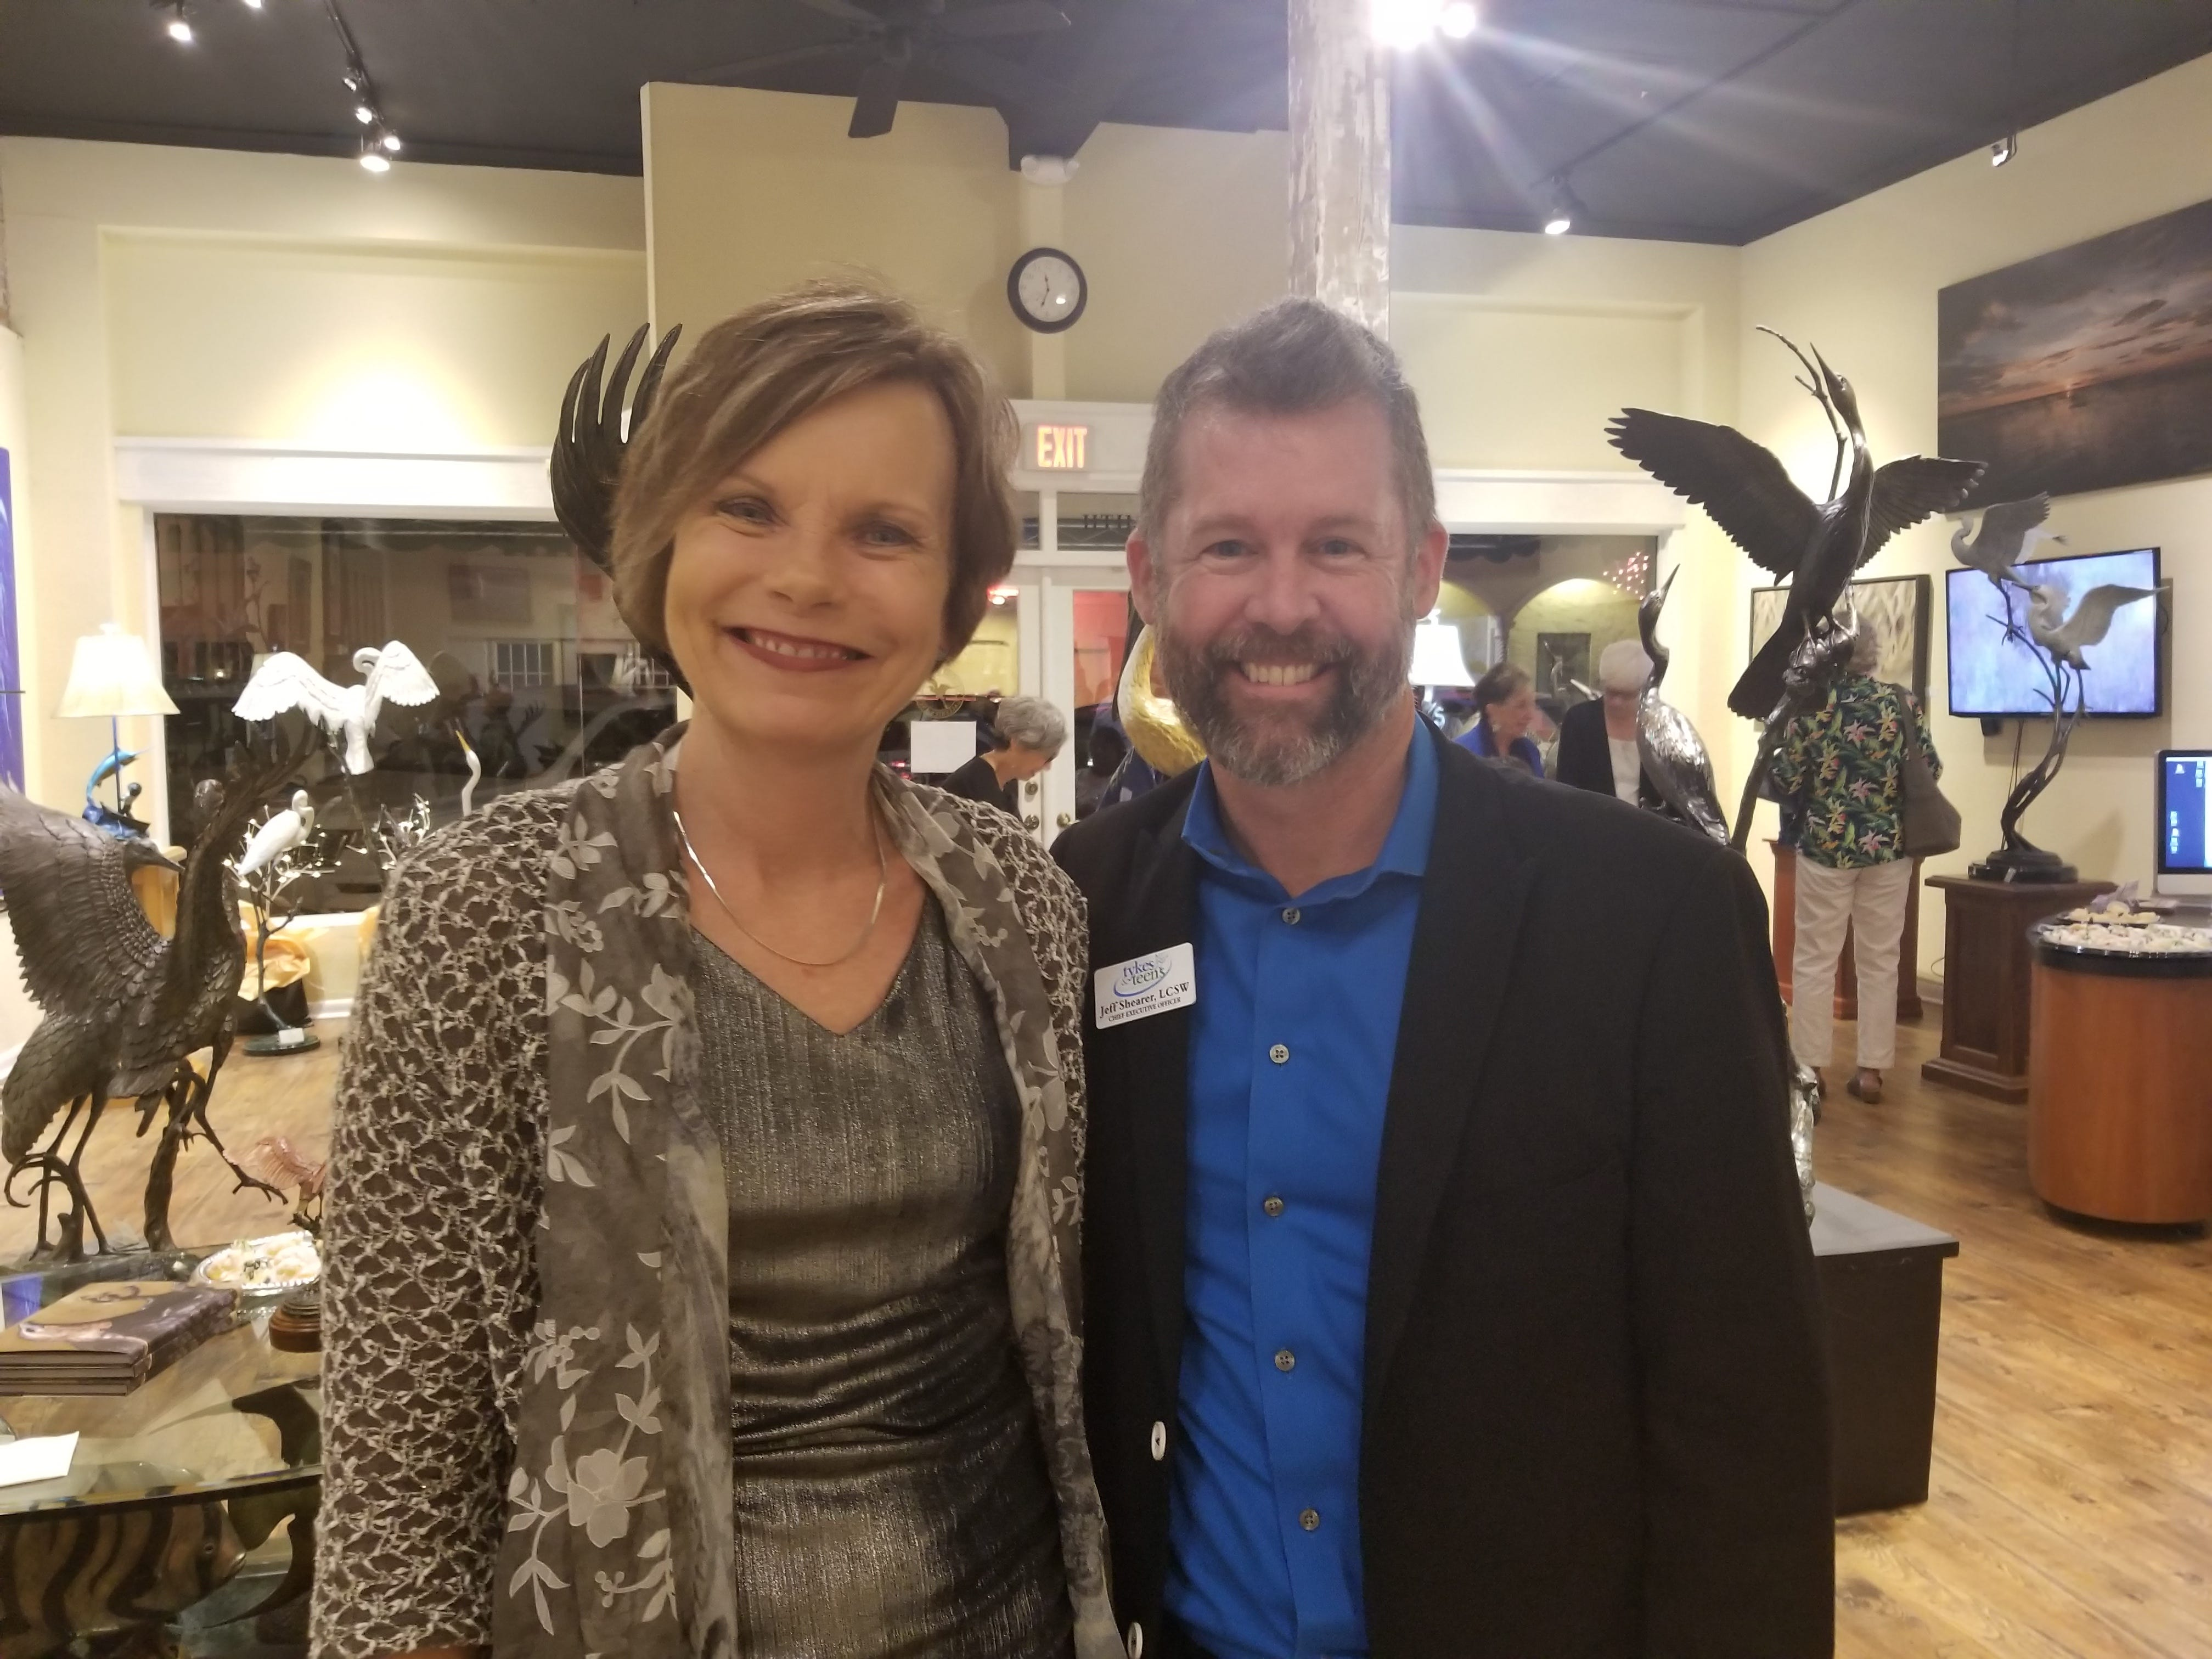 Tykes & Teens partnered with Stuart'sLyric Theatre and Geoffrey Smith Gallery to host a rocking evening of fun for Tykes & Teens supporters. Pictured are Shauna Bledsoe and Jeff Shearer.